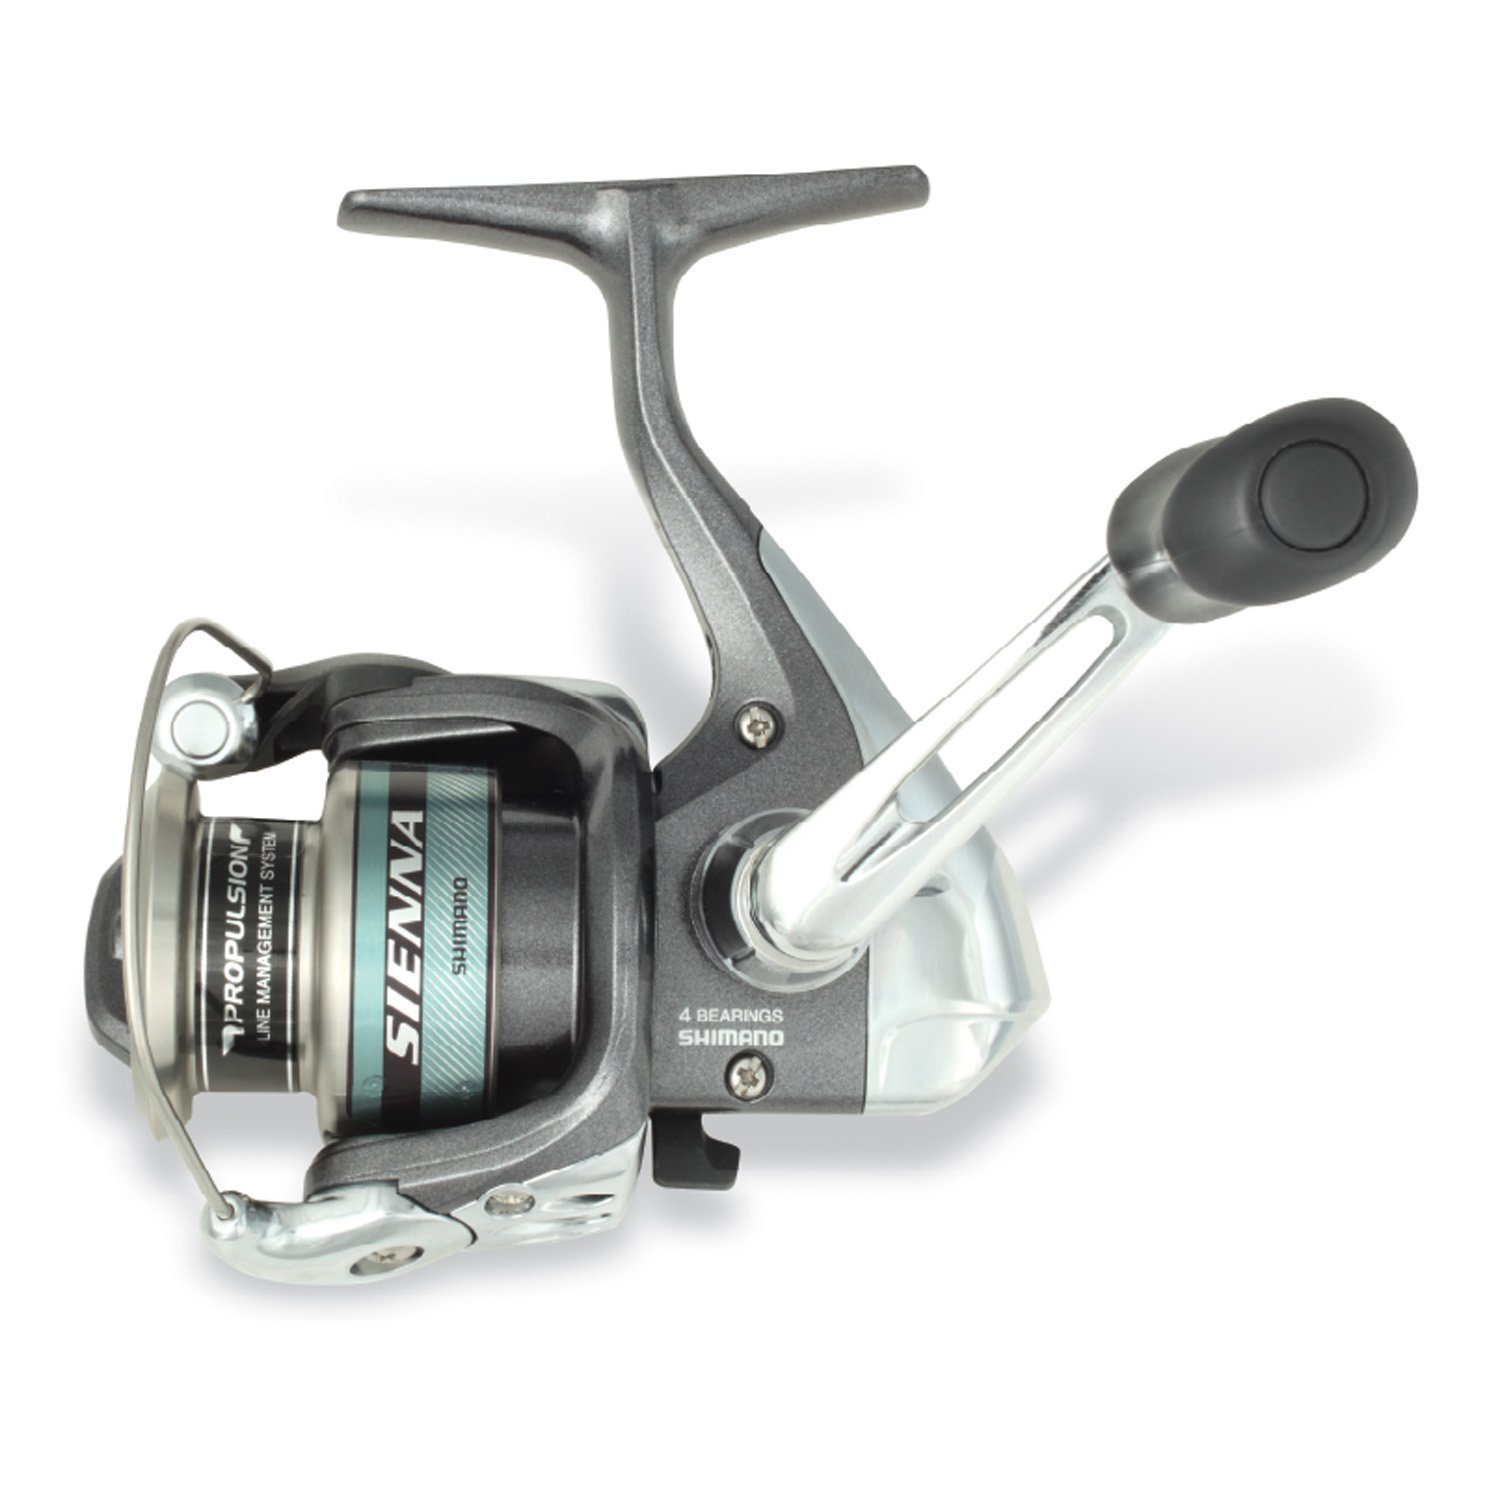 Fishing reel reviews page 3 of 3 baitcasting reels for Fly fishing reel reviews